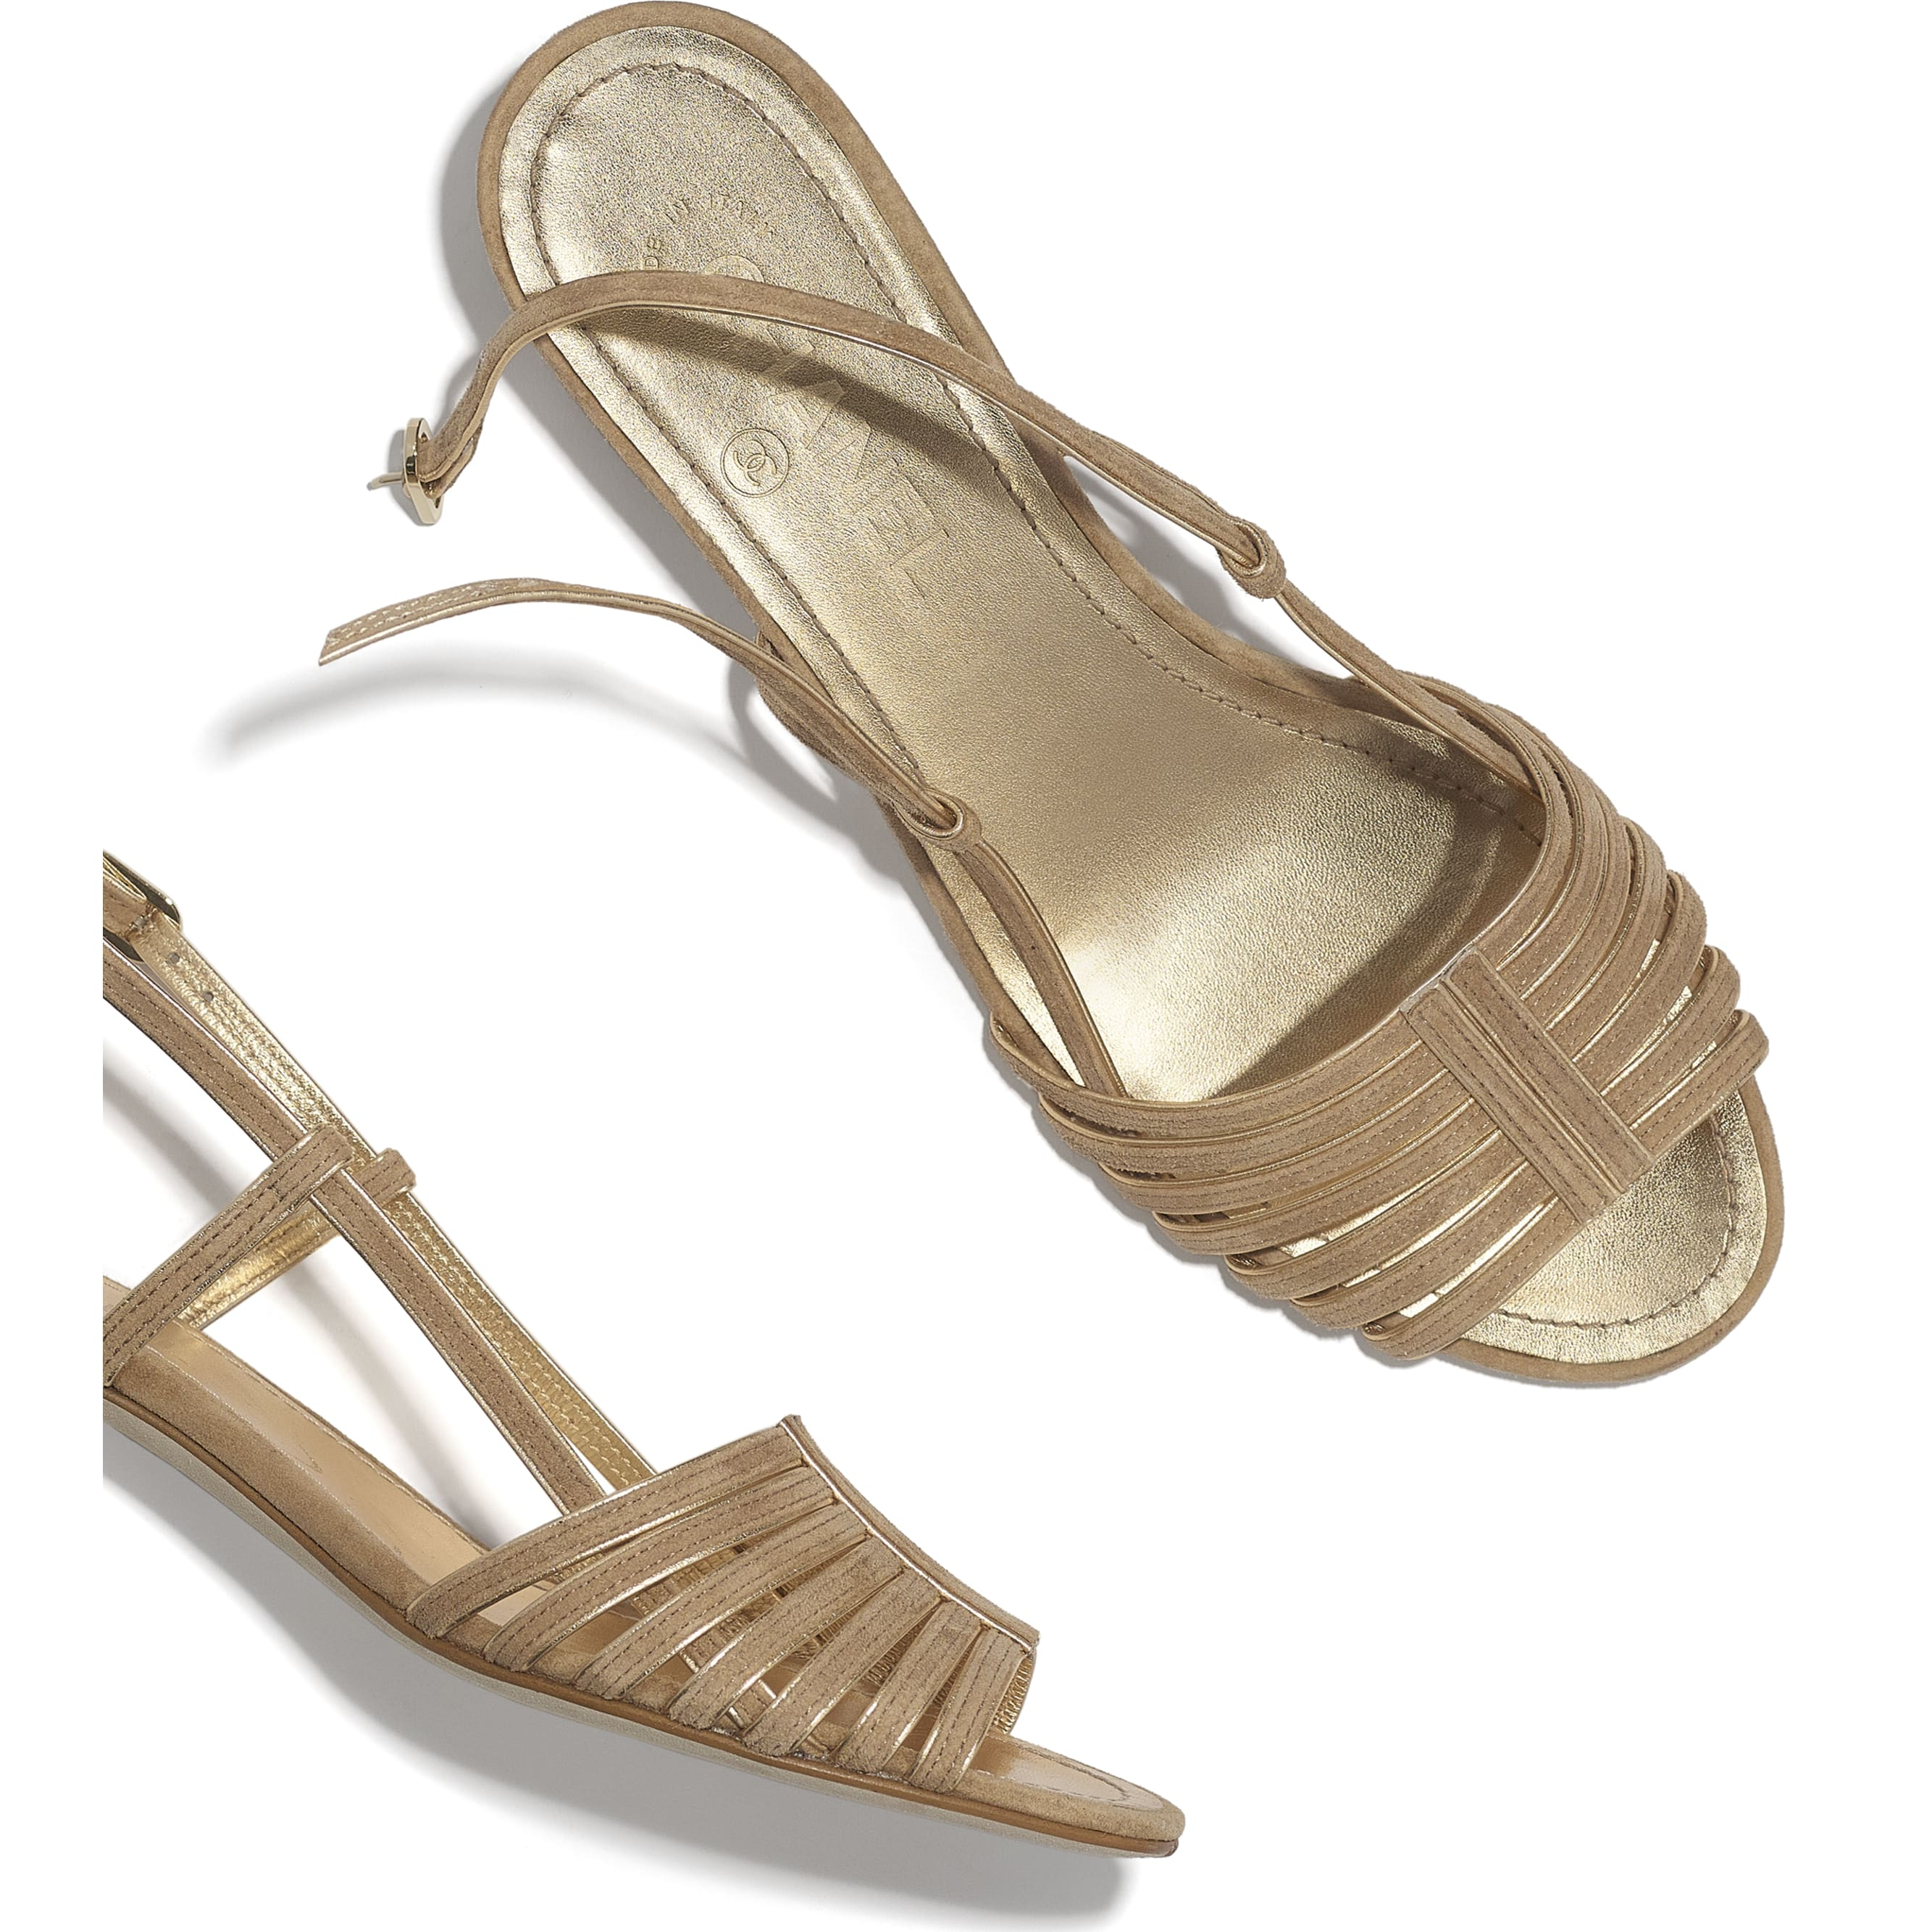 Sandals - Beige & Gold - Suede Kidskin - CHANEL - Extra view - see standard sized version